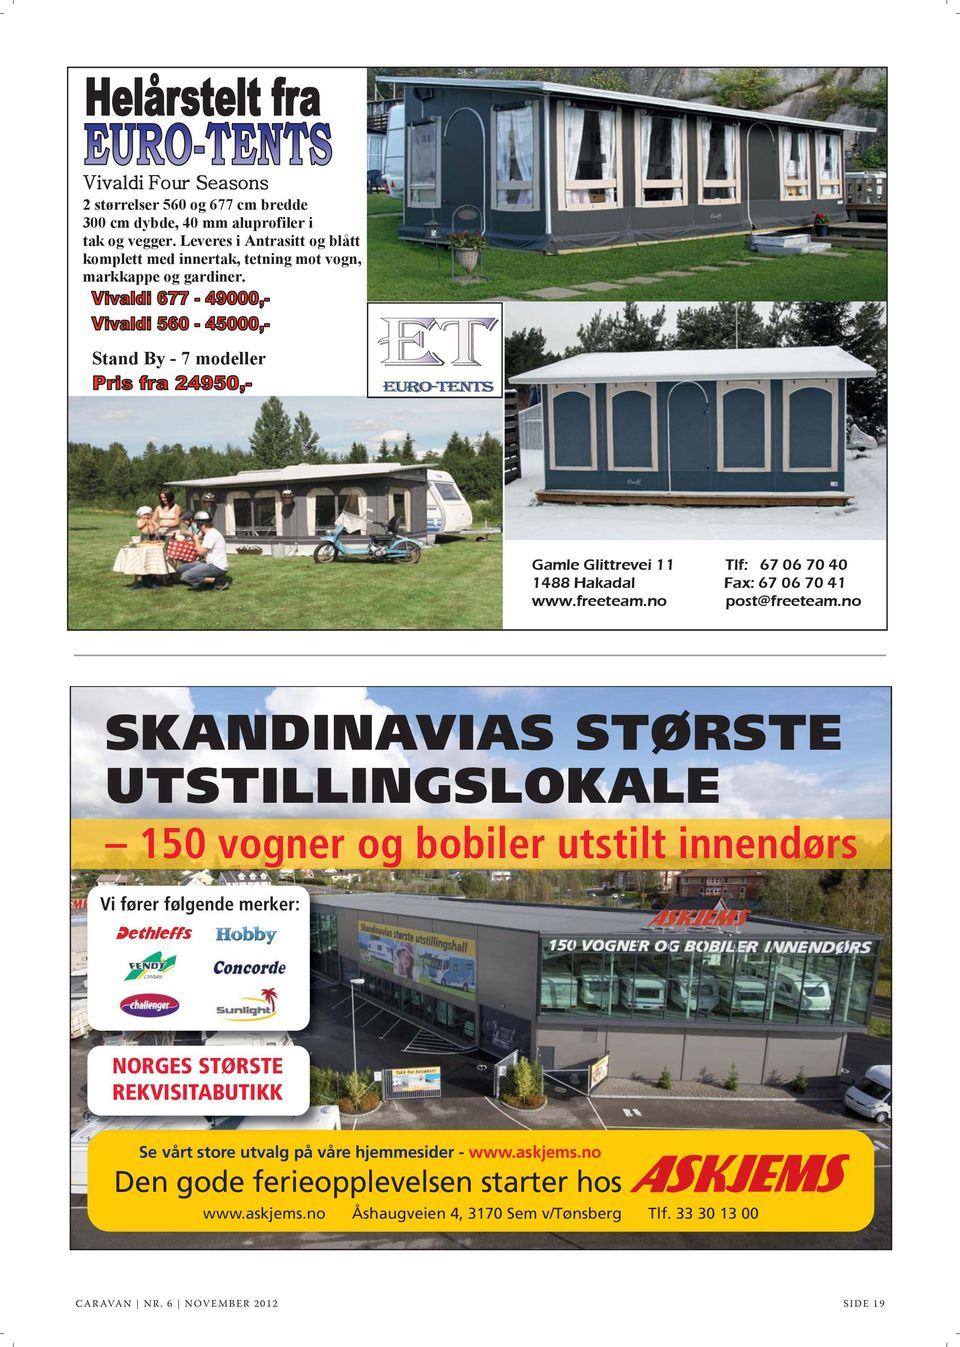 Stand By - 7 modeller Gamle Glittrevei 11 Tlf: 67 06 70 40 1488 Hakadal Fax: 67 06 70 41 www.freeteam.no post@freeteam.